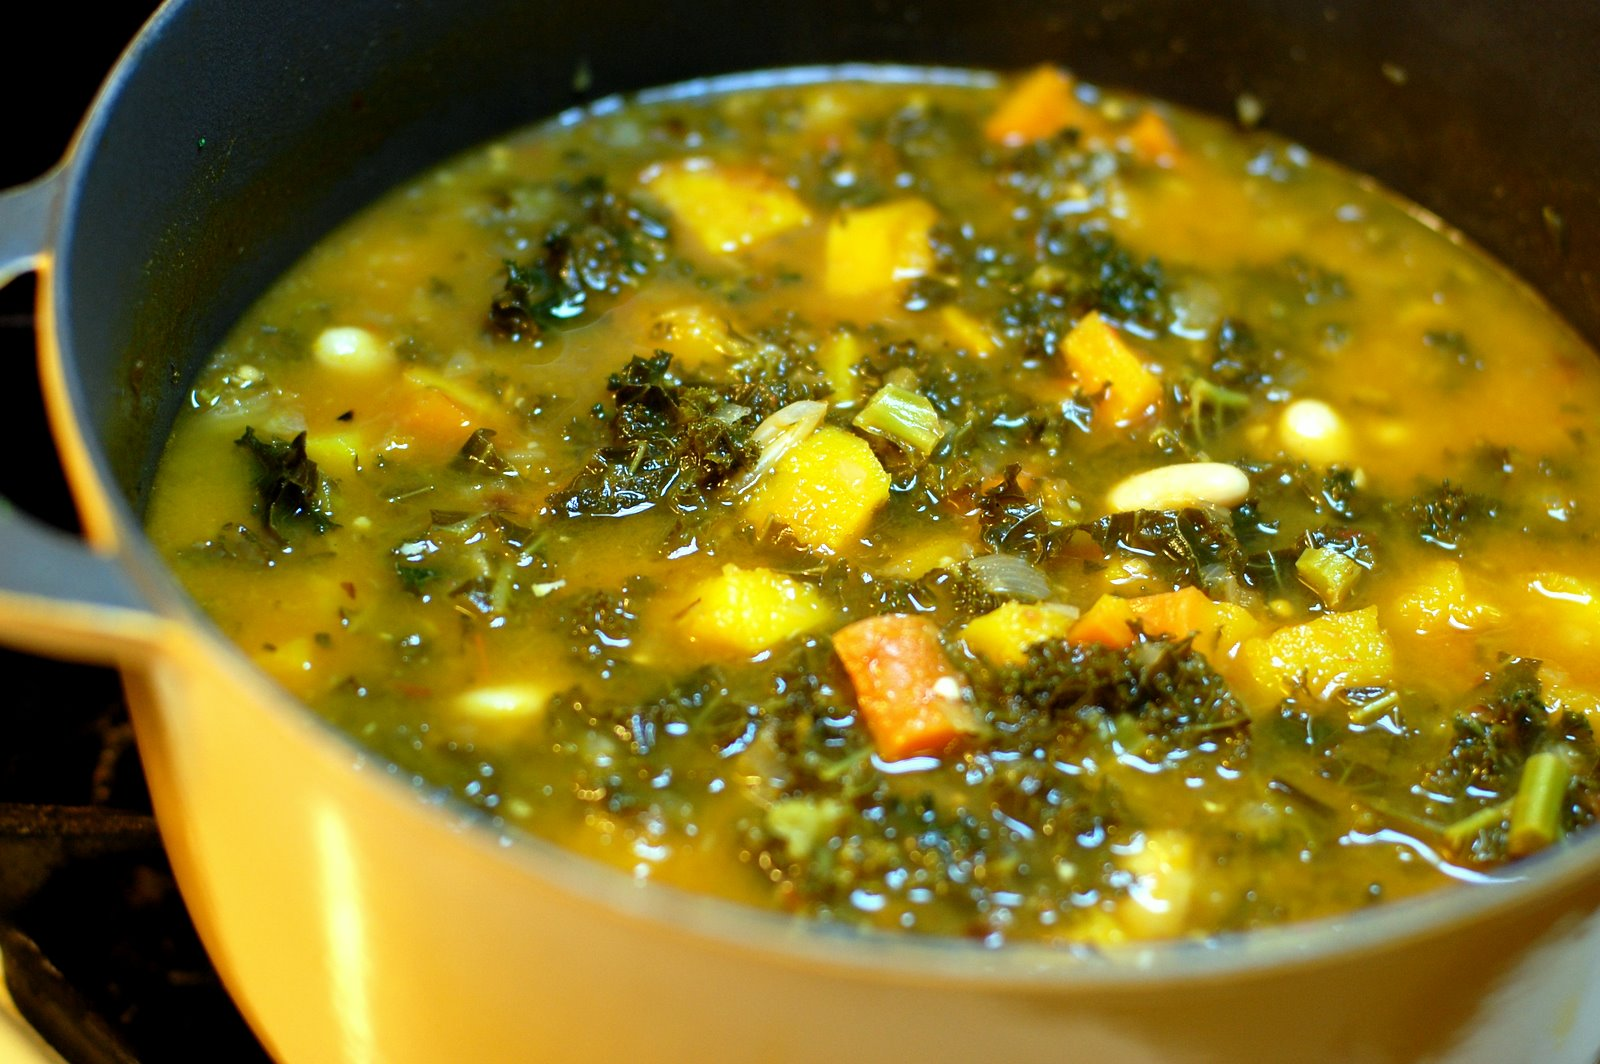 Barefoot and Baking: Kale and Roasted Vegetable Soup